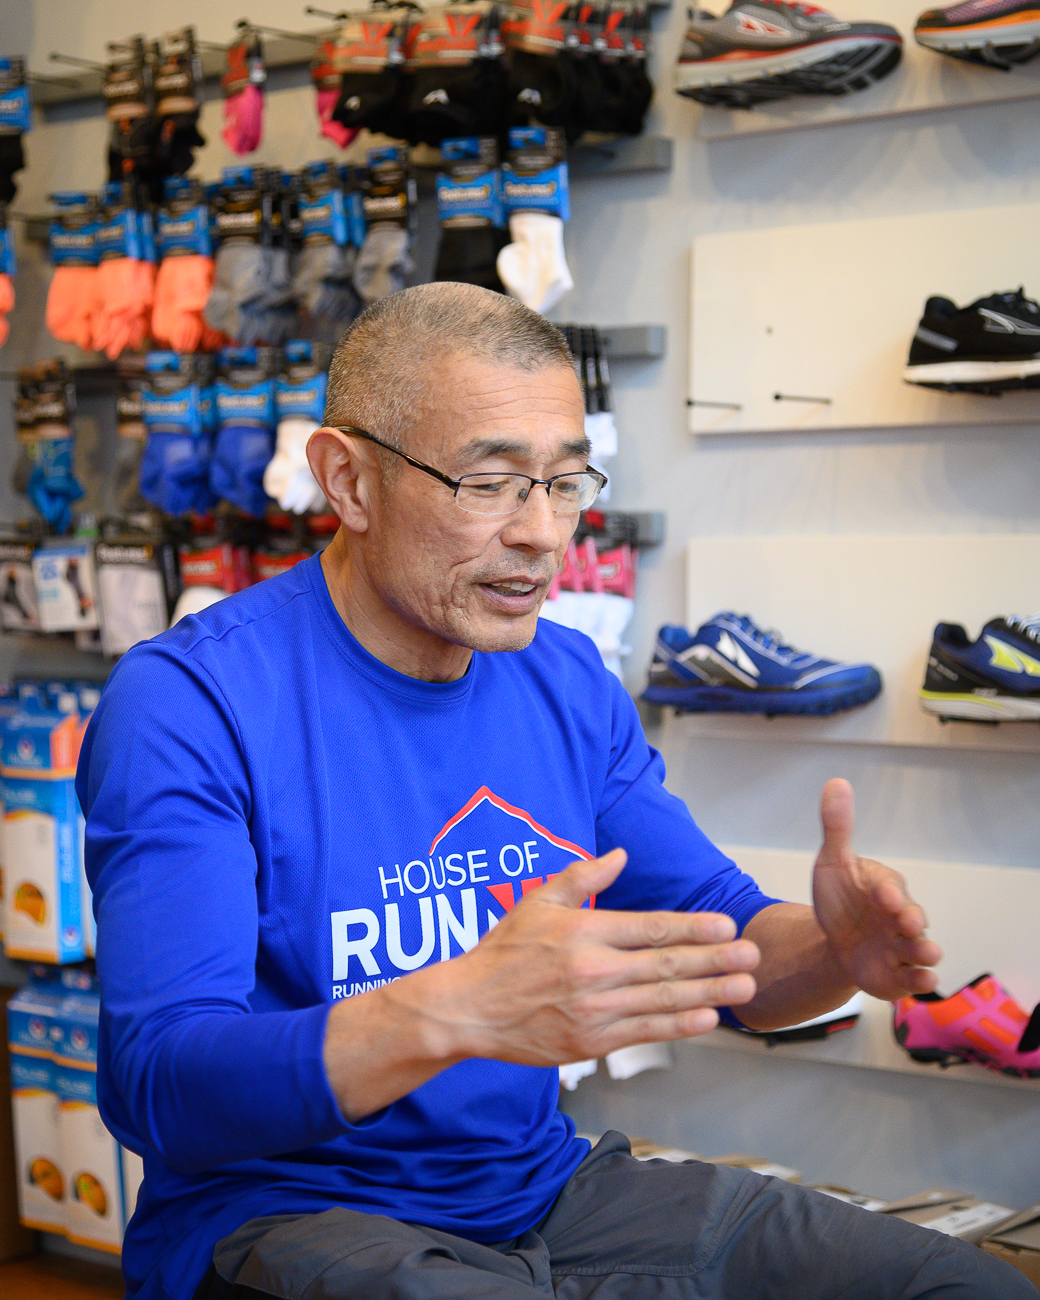 """I want to find the best possible fit to support every step and protect against road shock,"" says Fung. ""Then, I can coach to proper mechanics for a more enjoyable run, and less injuries later."" / Image: Phil Armstrong, Cincinnati Refined // Published: 5.30.19"